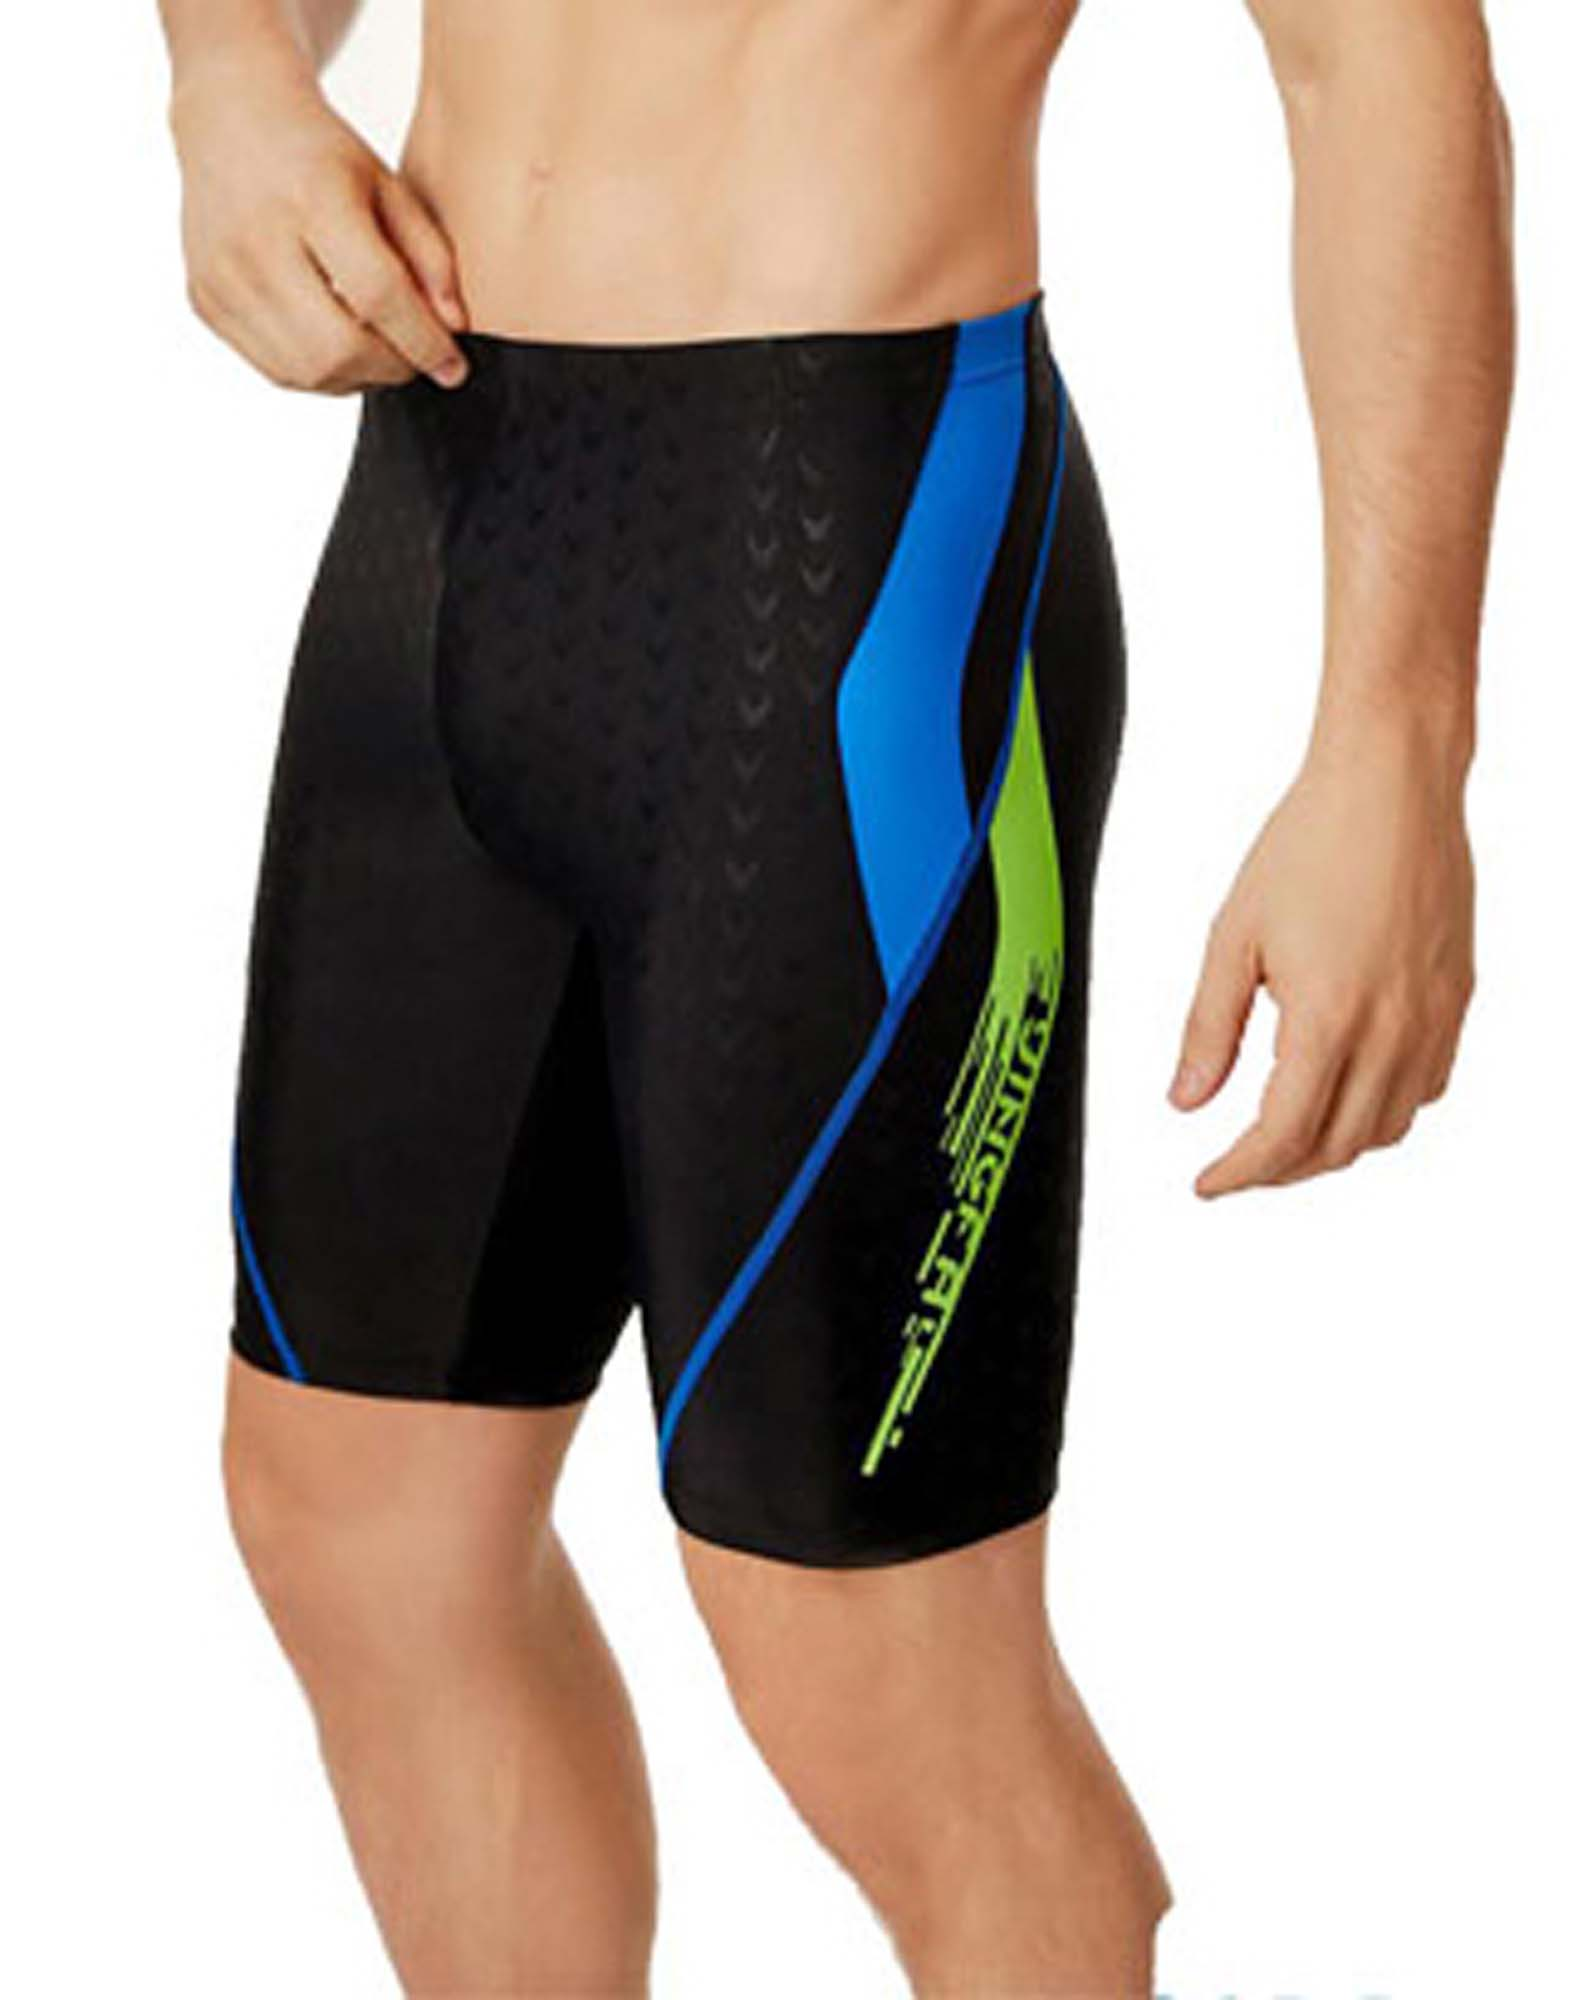 4bc272a49ab61 Y3808-2 swimming trunks swimming board shorts swim jammers for men and boys